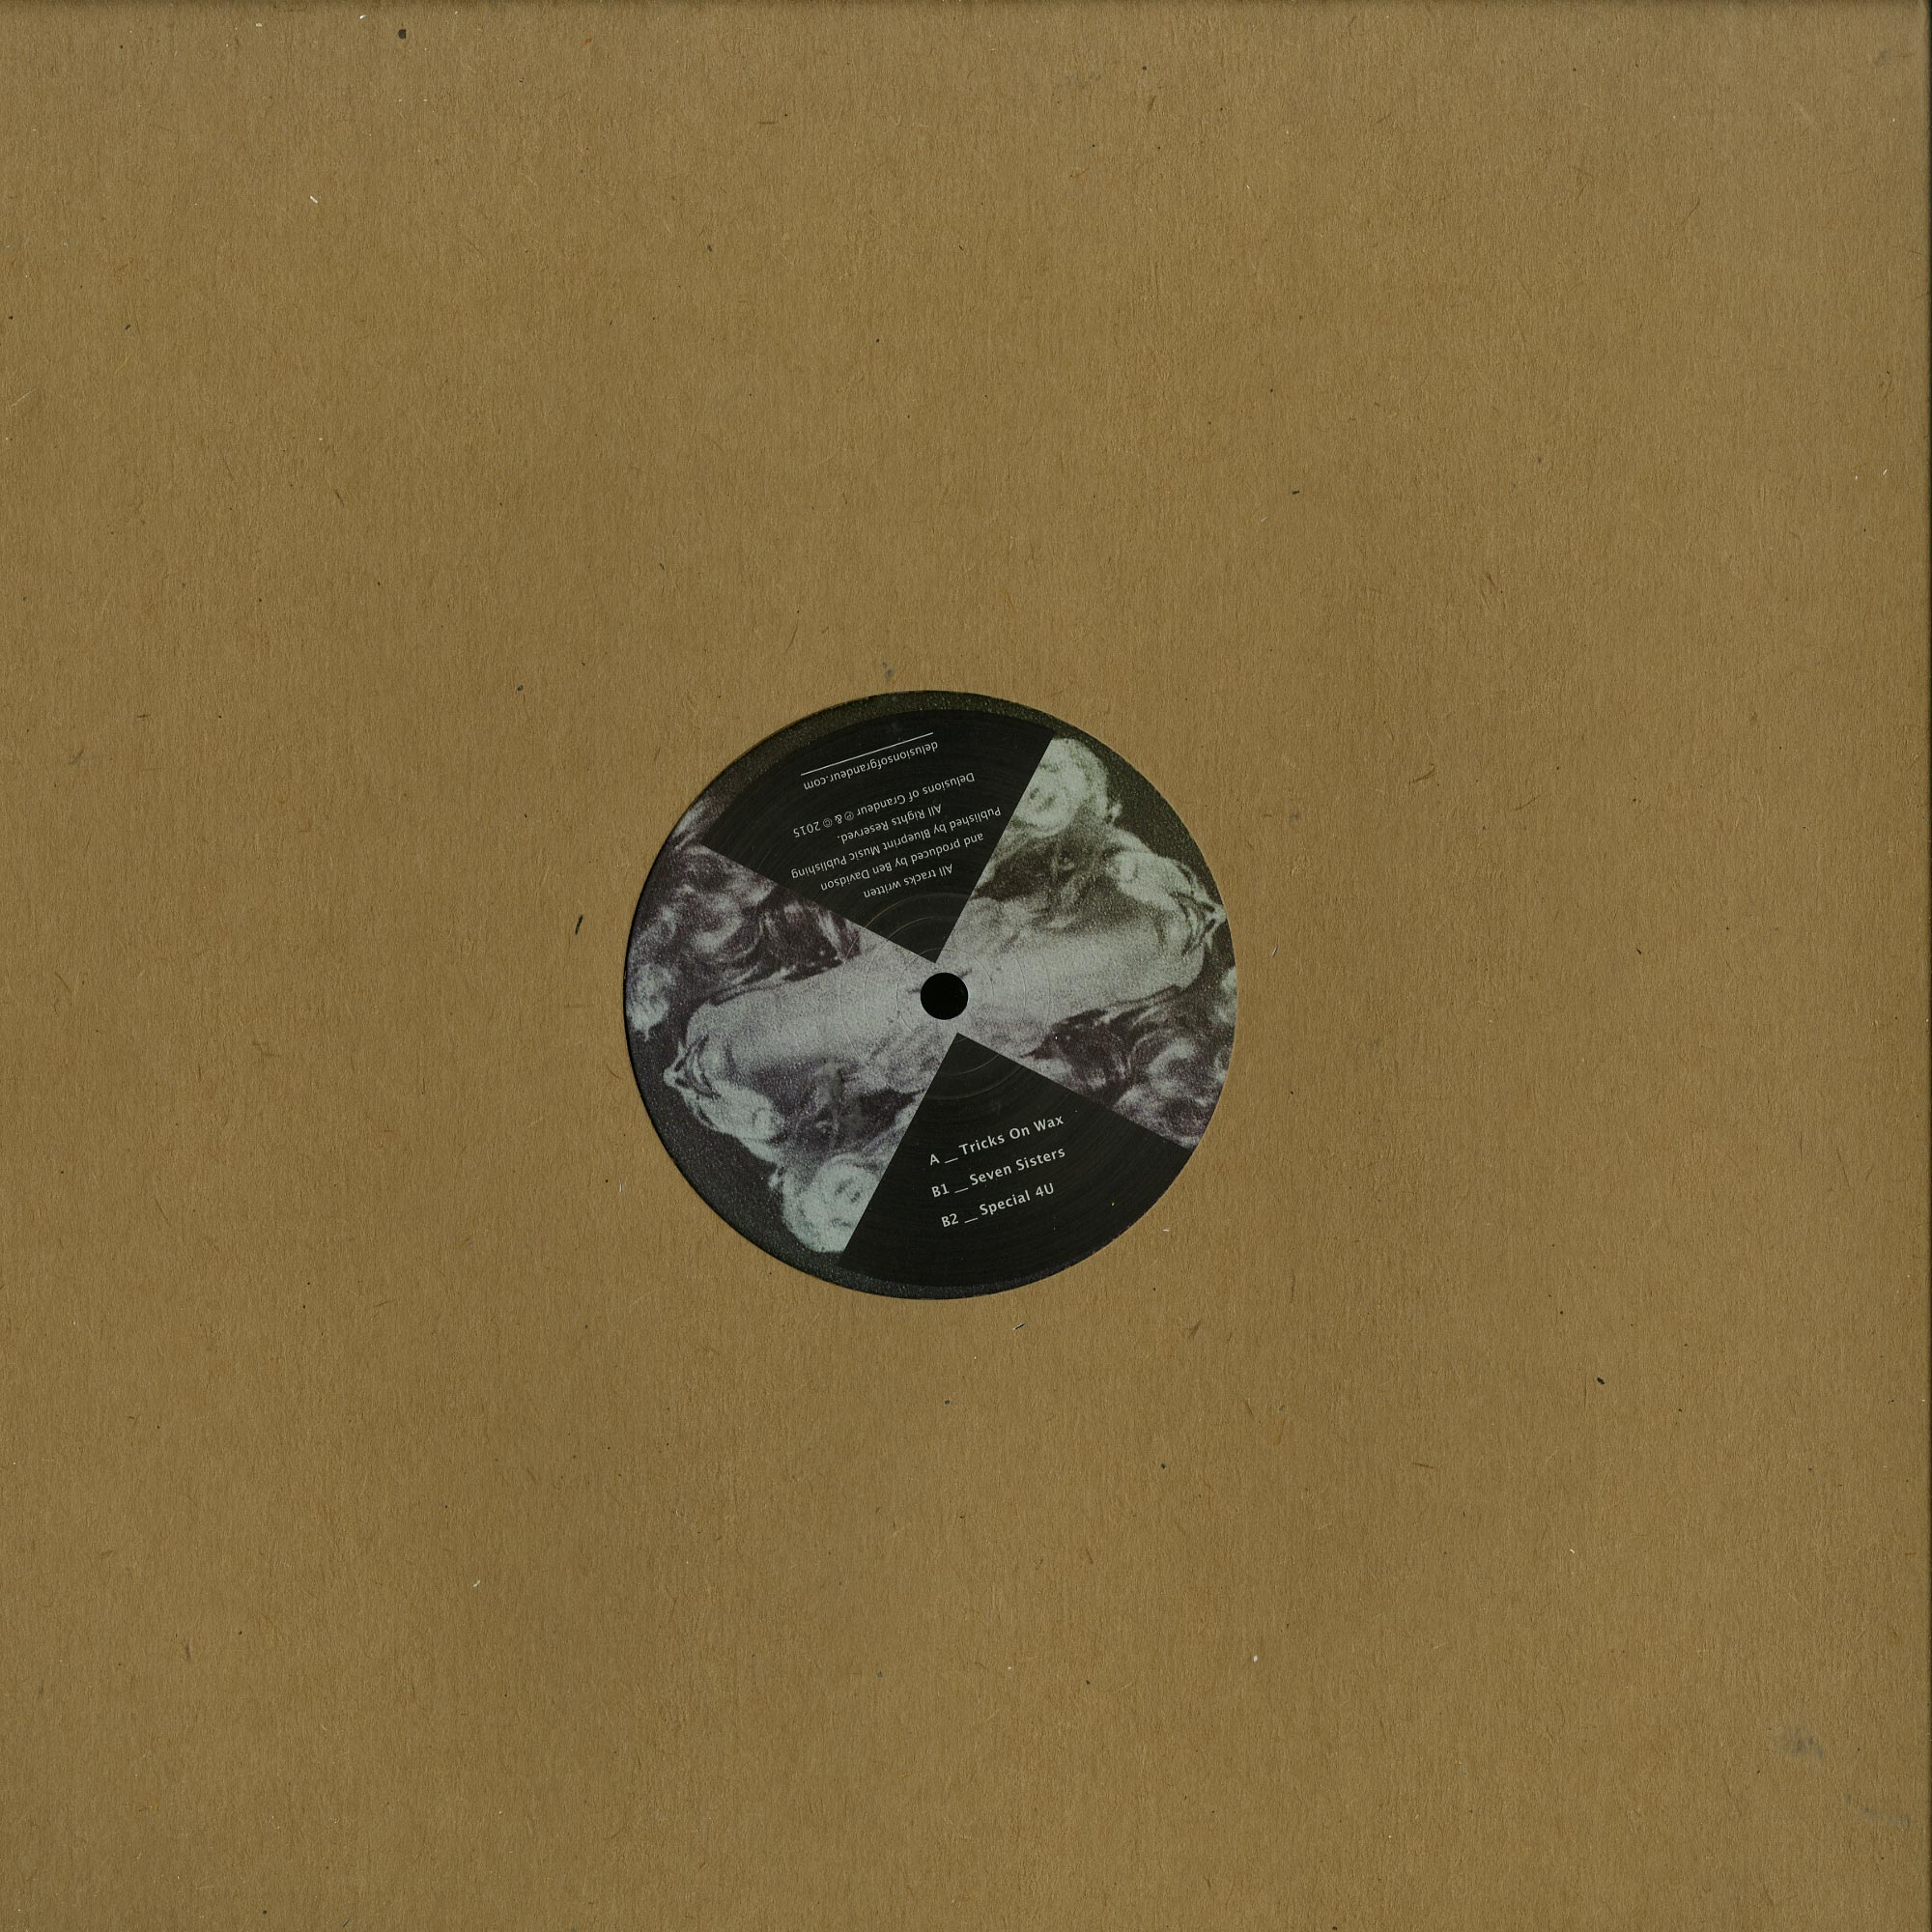 Ben Sun - TRICKS ON WAX EP